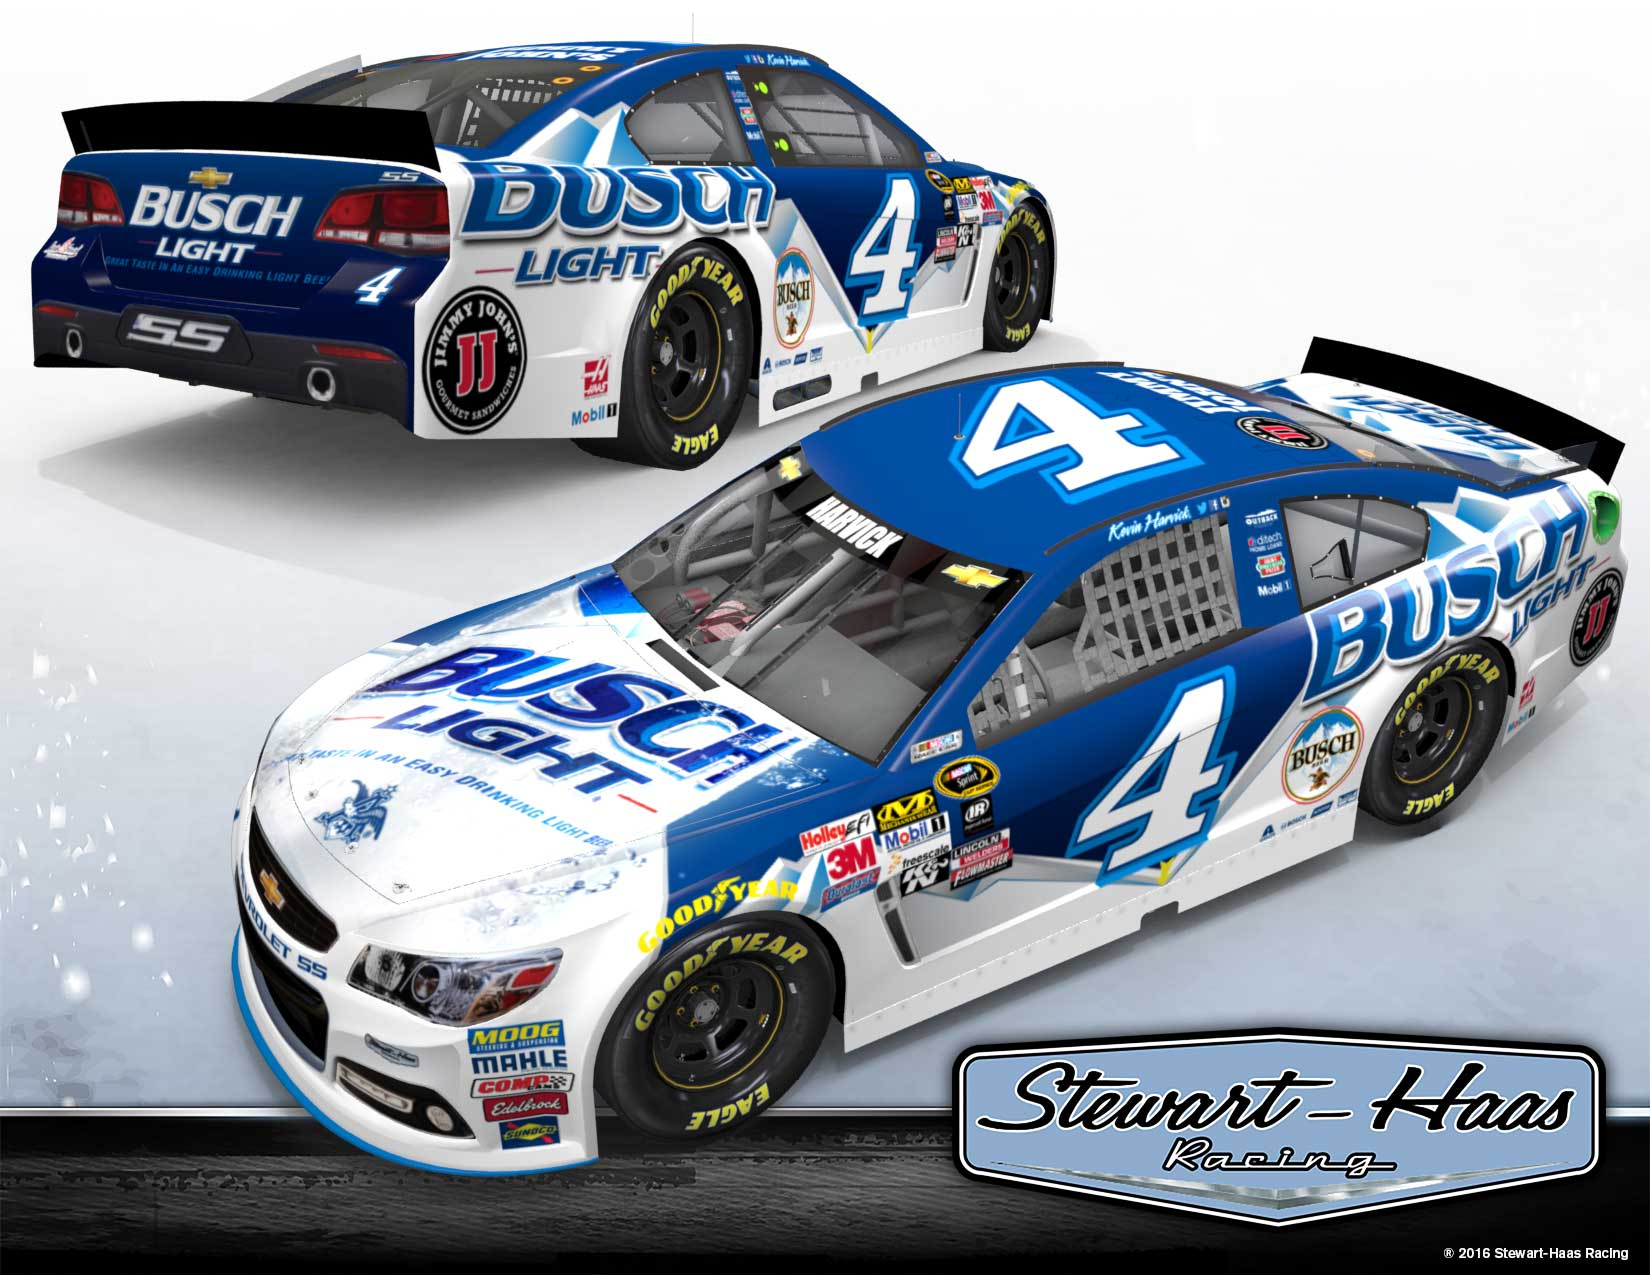 Kevin harvick 2014 car number 2017 2018 best cars reviews - Busch Light No 4 Car